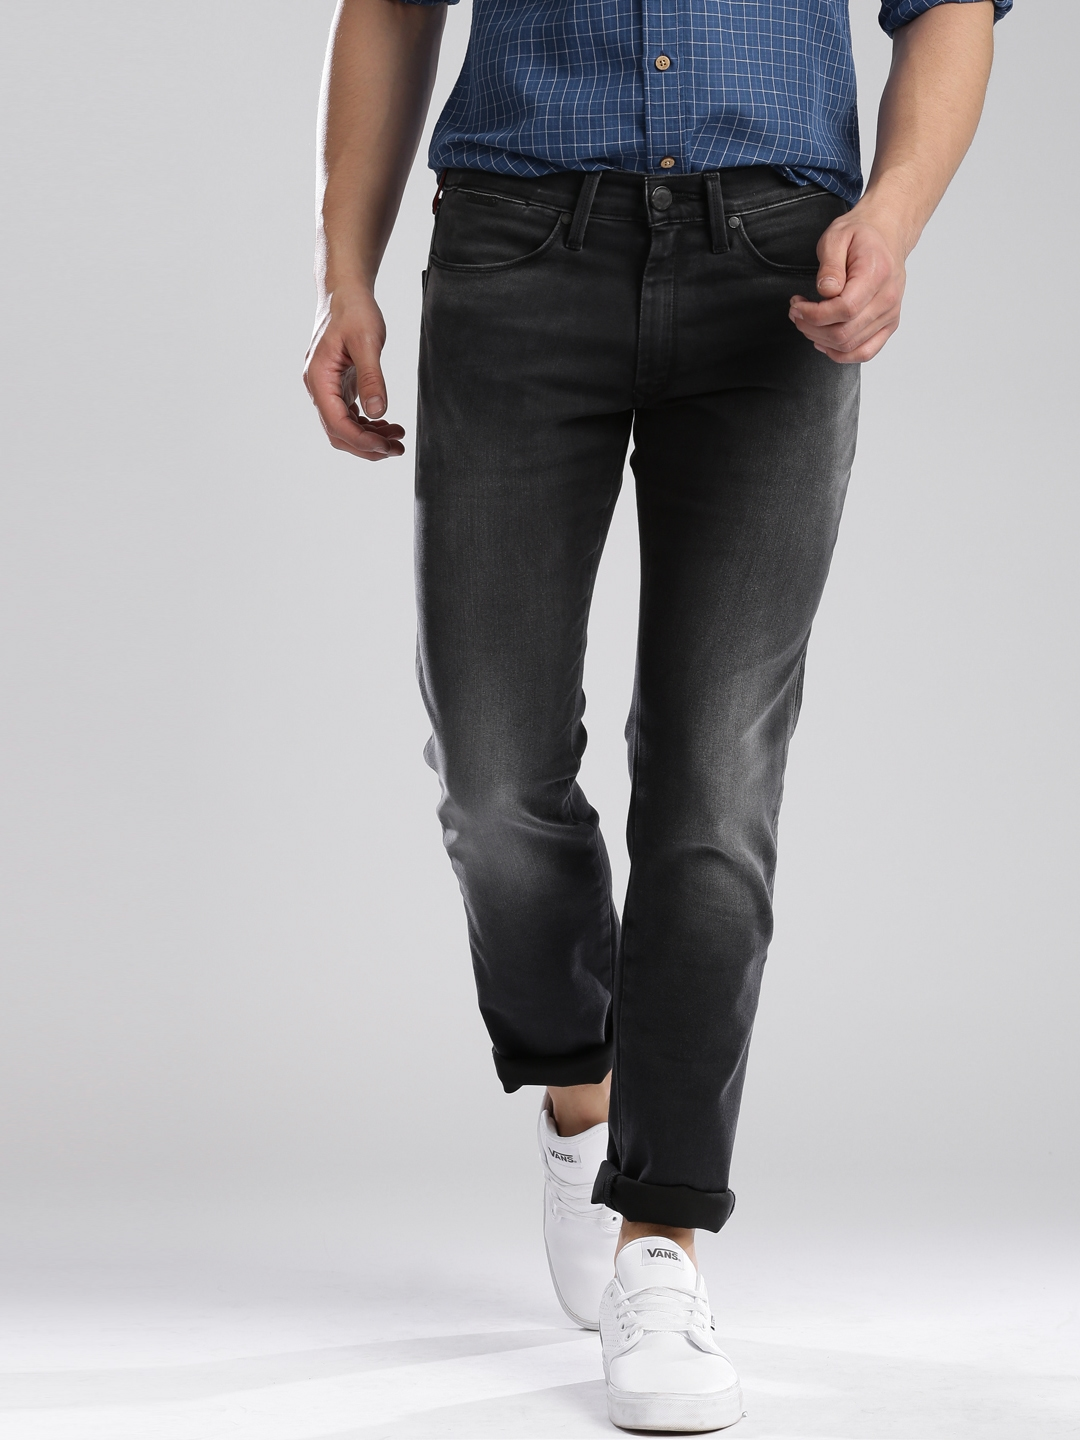 92b6a577 Levi S Black Skinny Straight Fit 65504 Jeans For Men